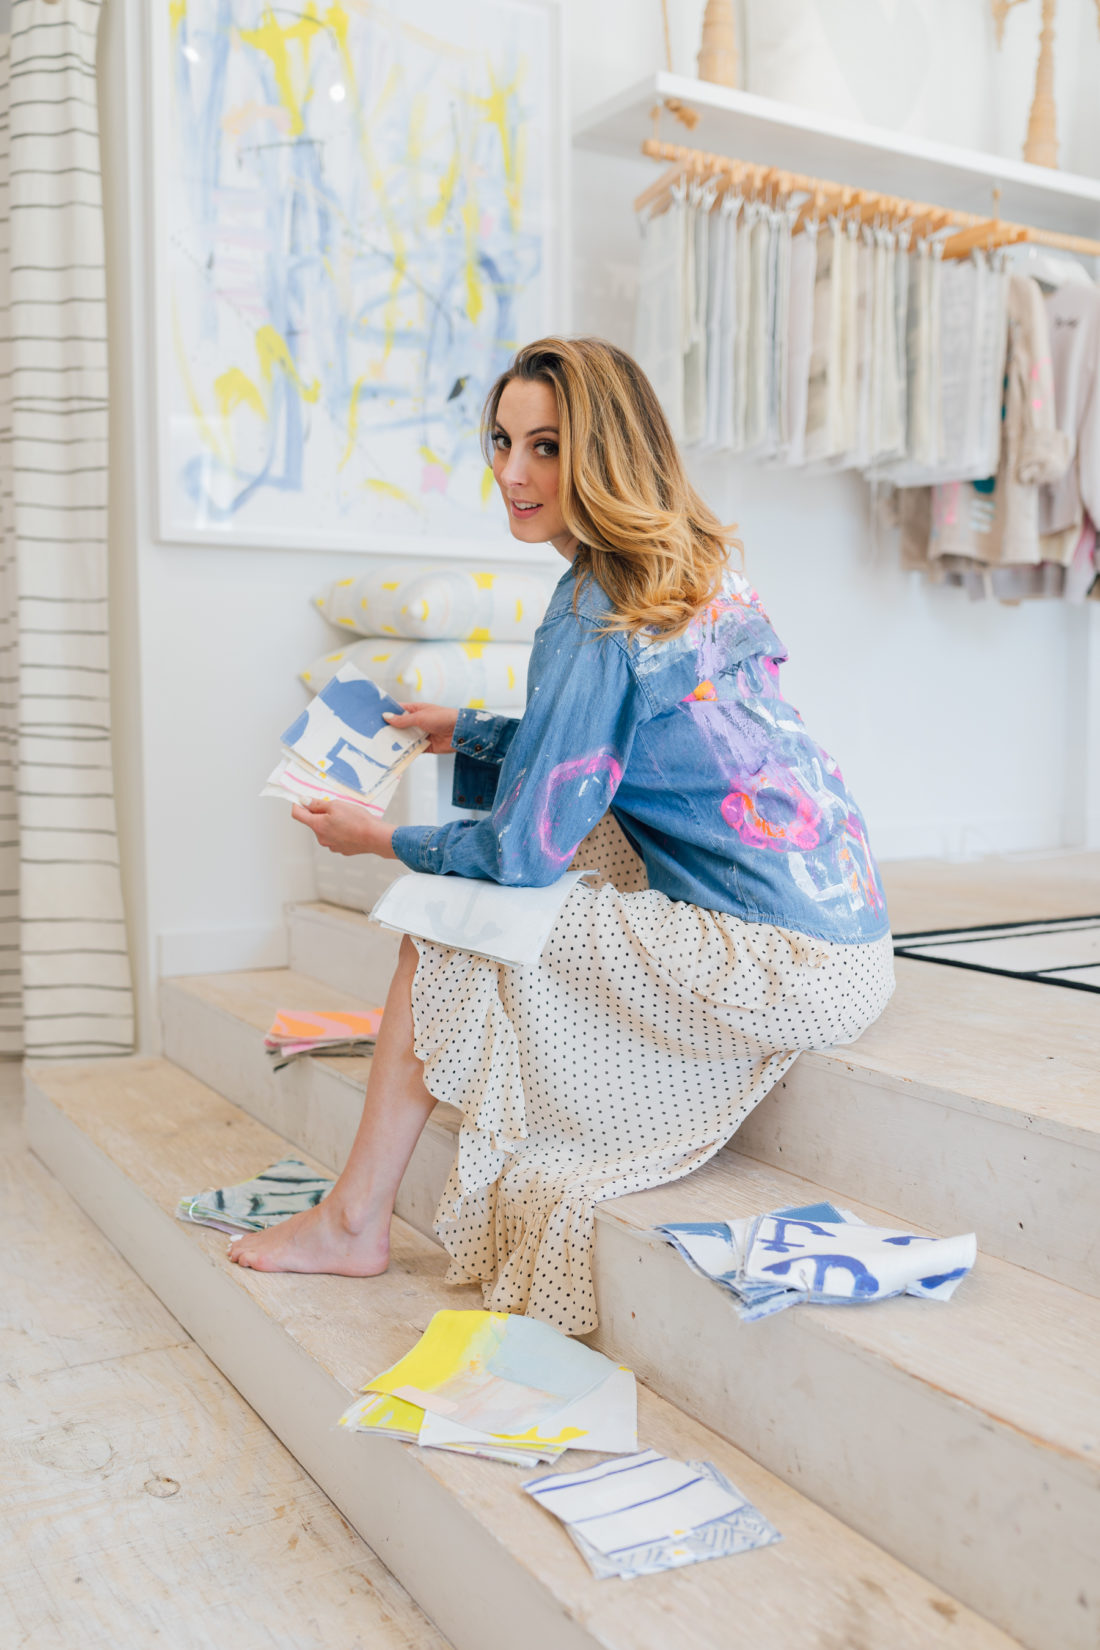 6972384822dbc Eva Amurri Martino wears a painted Kerri Rosenthal denim jacket and peruses  fabric and wallpaper samples